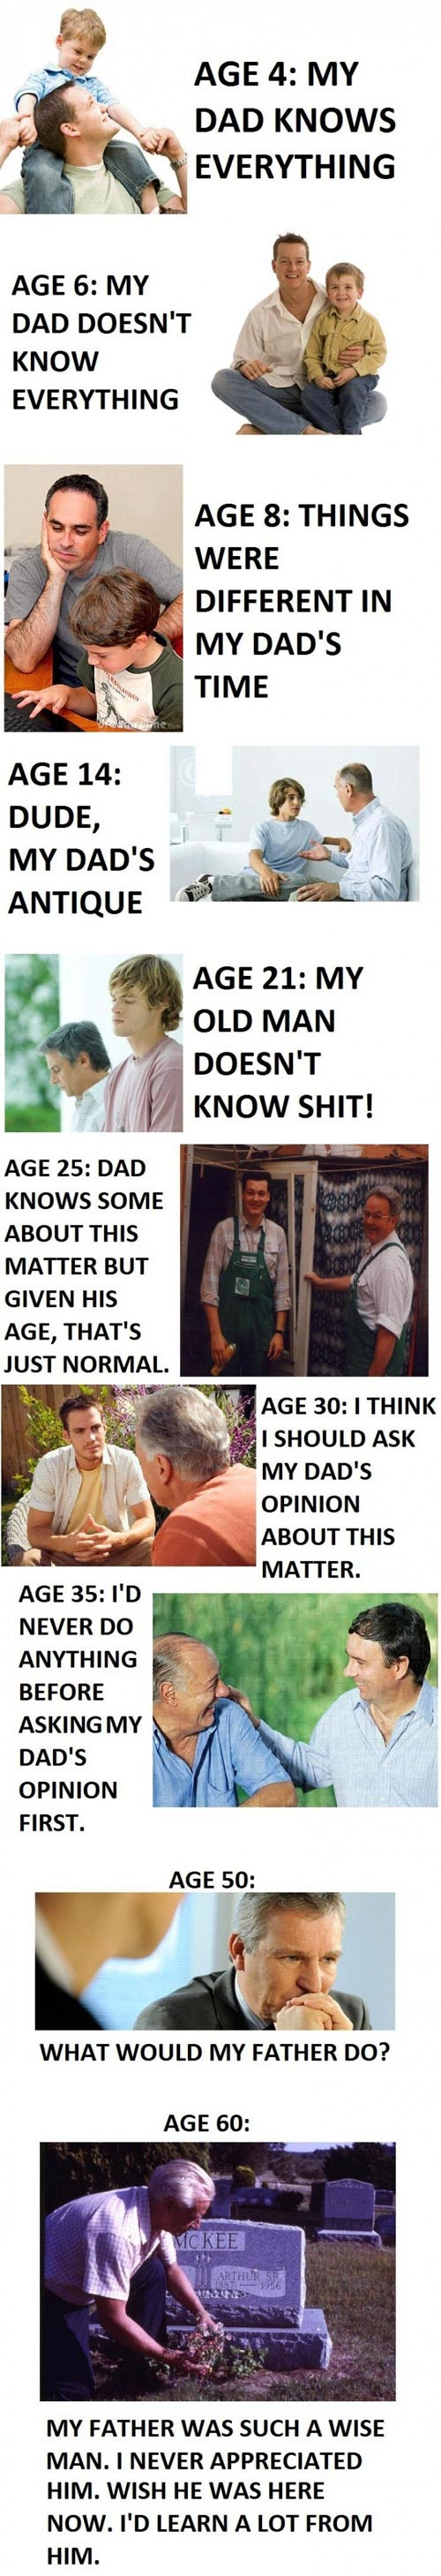 How Age Determines A Father's Awesomeness